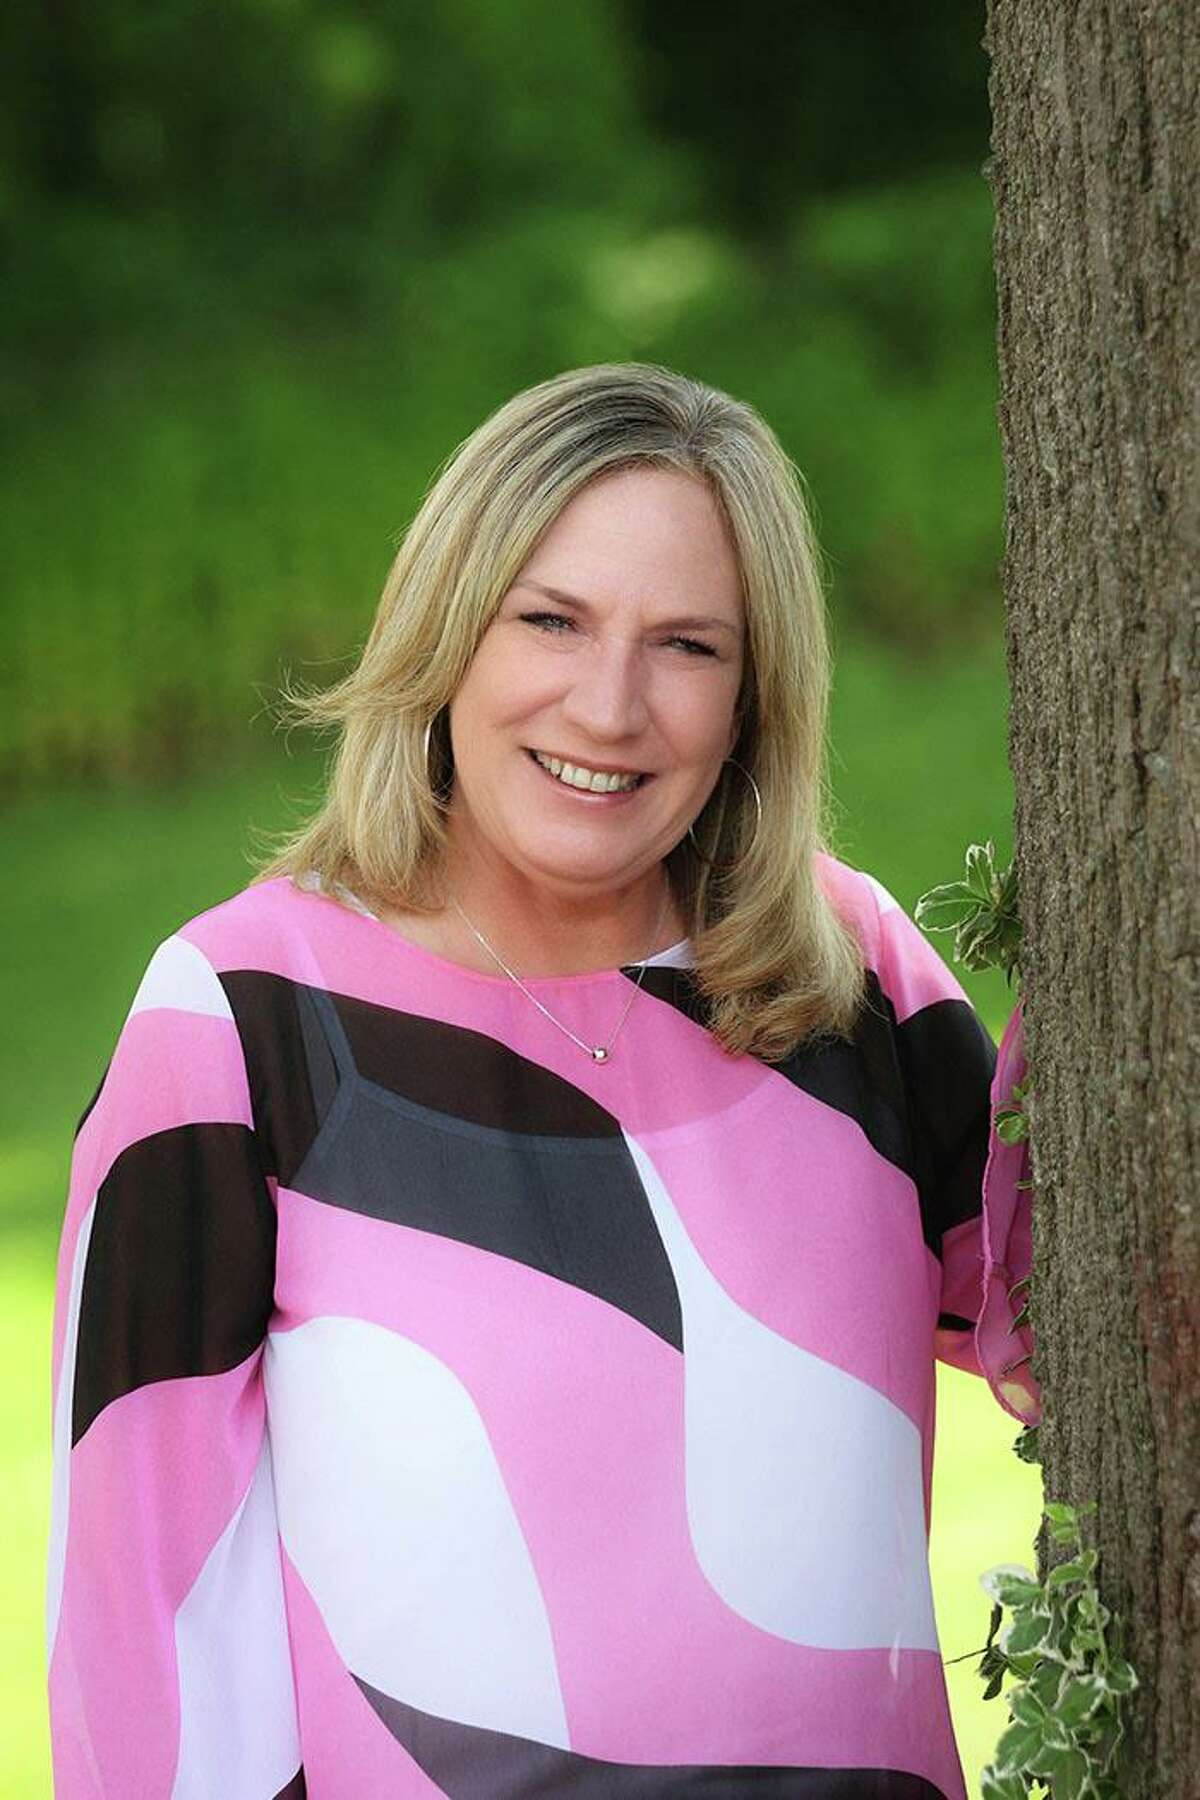 Jeannie Demko, of Danbury, will become the director of alumni relations at Immaculate High School beginning July 1, 2020.